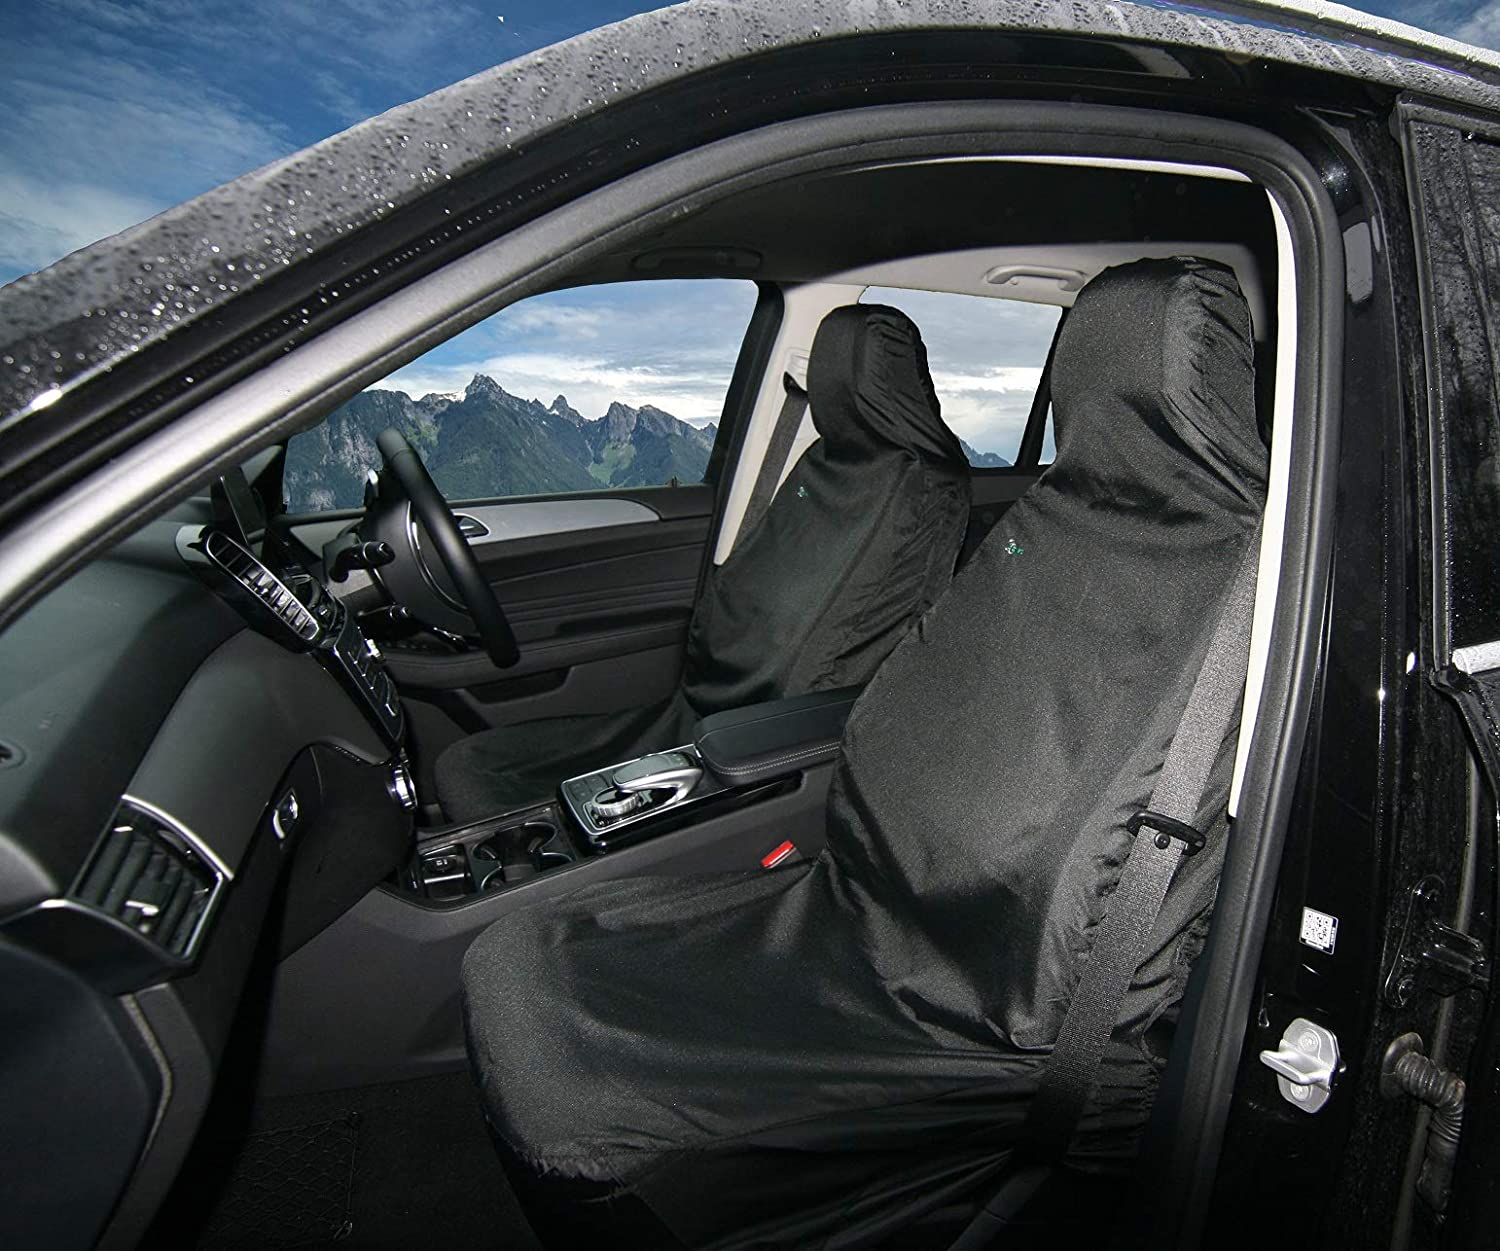 3D Van Double Seat Cover Multi Fit Black Waterproof Town and Country VBLK